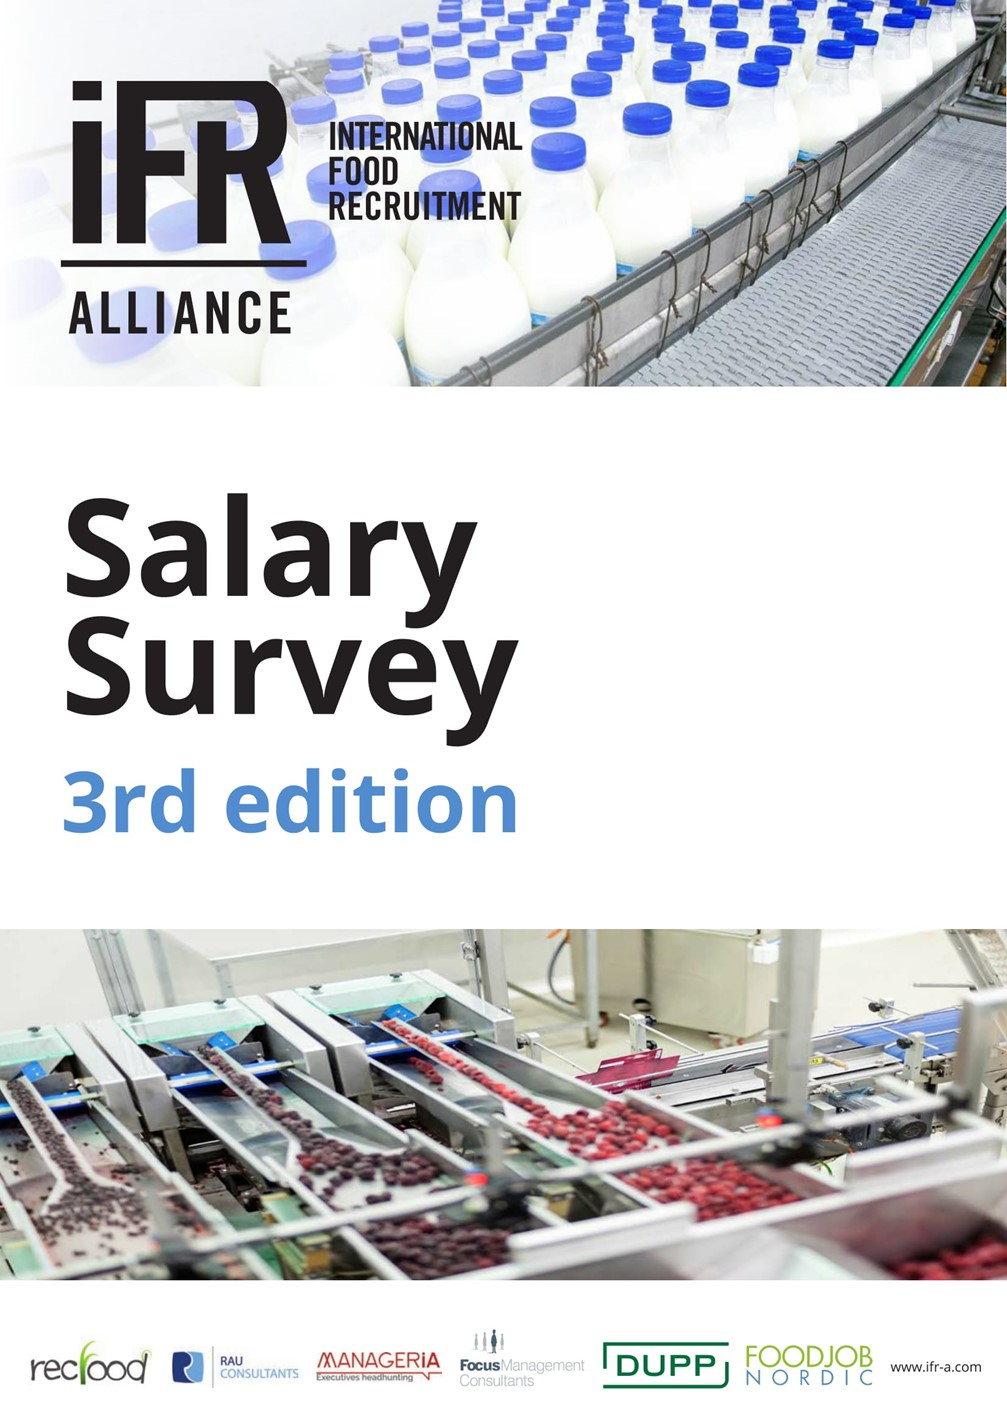 IFR-a salary survey 3rd edition page 1